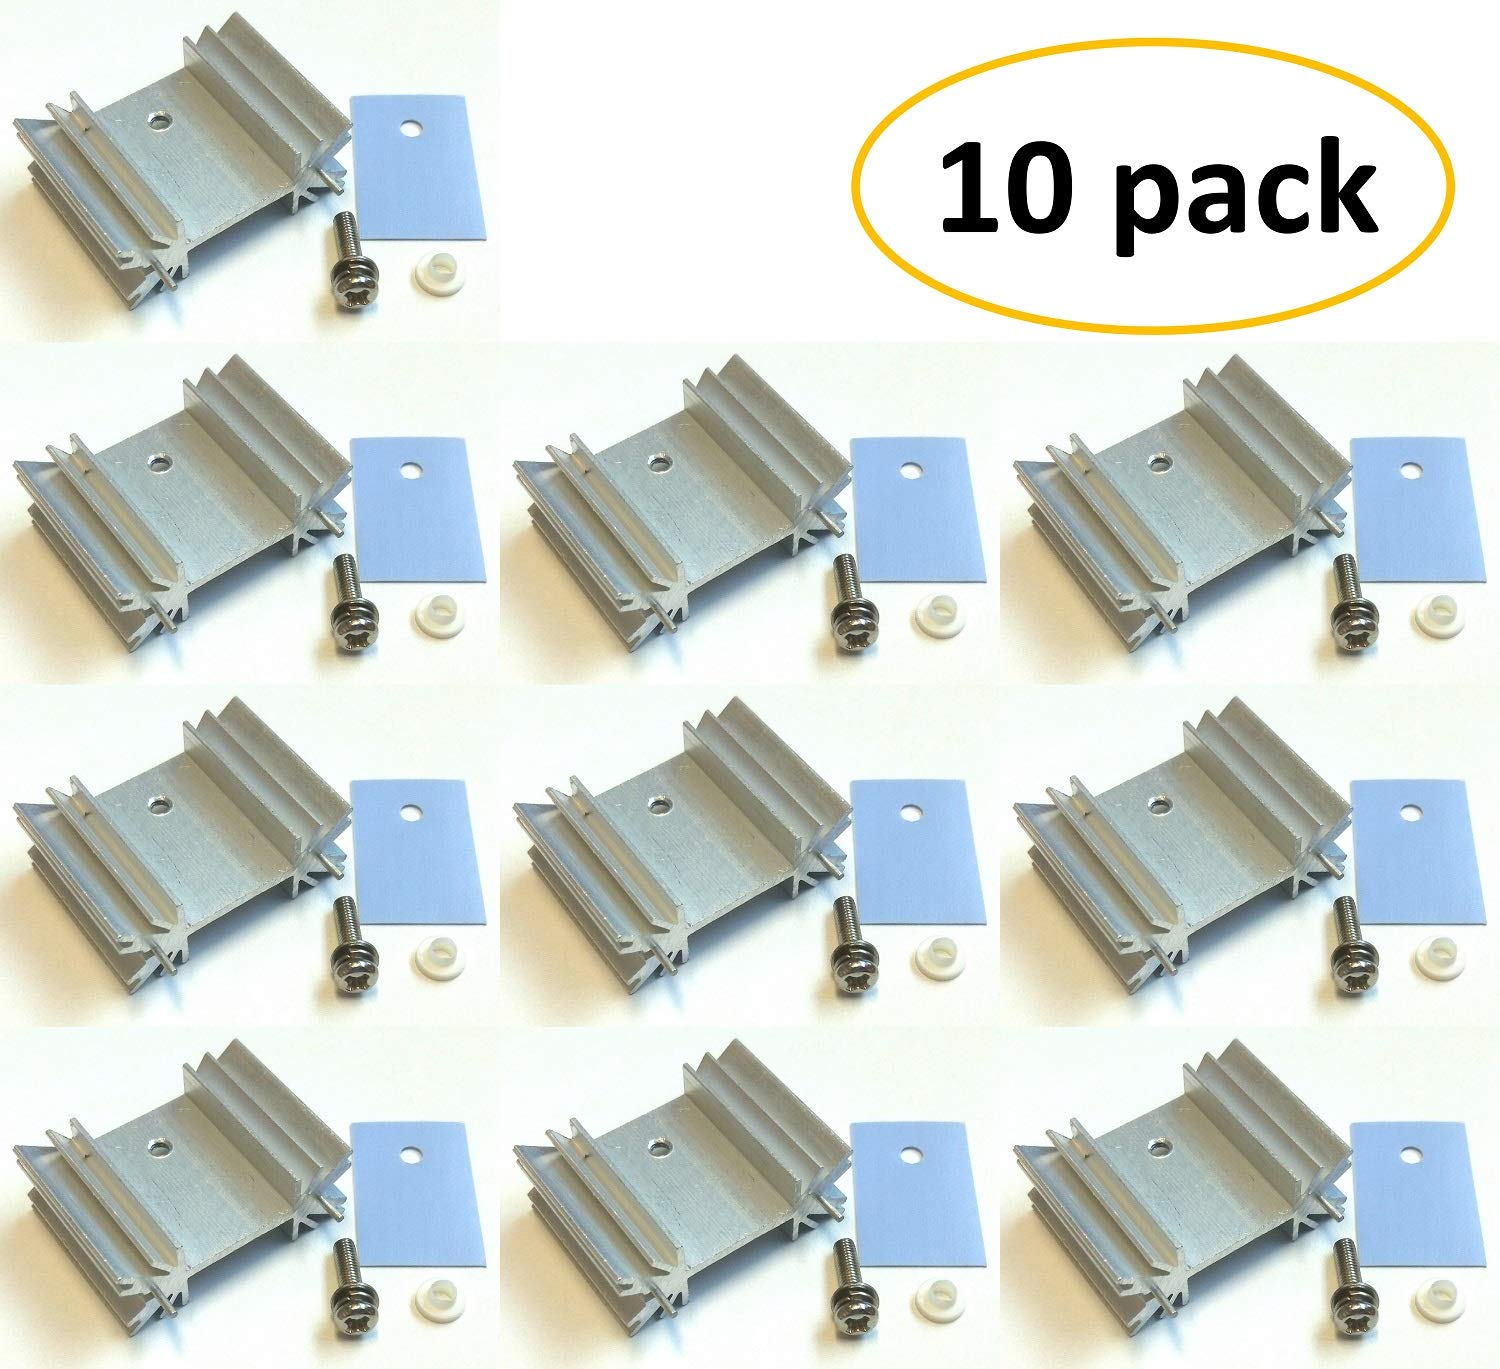 for LM78XX Voltage Regulator Insulator//Mounting Kits Easycargo TO-220 Heatsink MOSFET Transistor Silver 10 Pack Screw+Washer+Bushing+Insulator Rubberized Silicone+ Heatsink TO-220